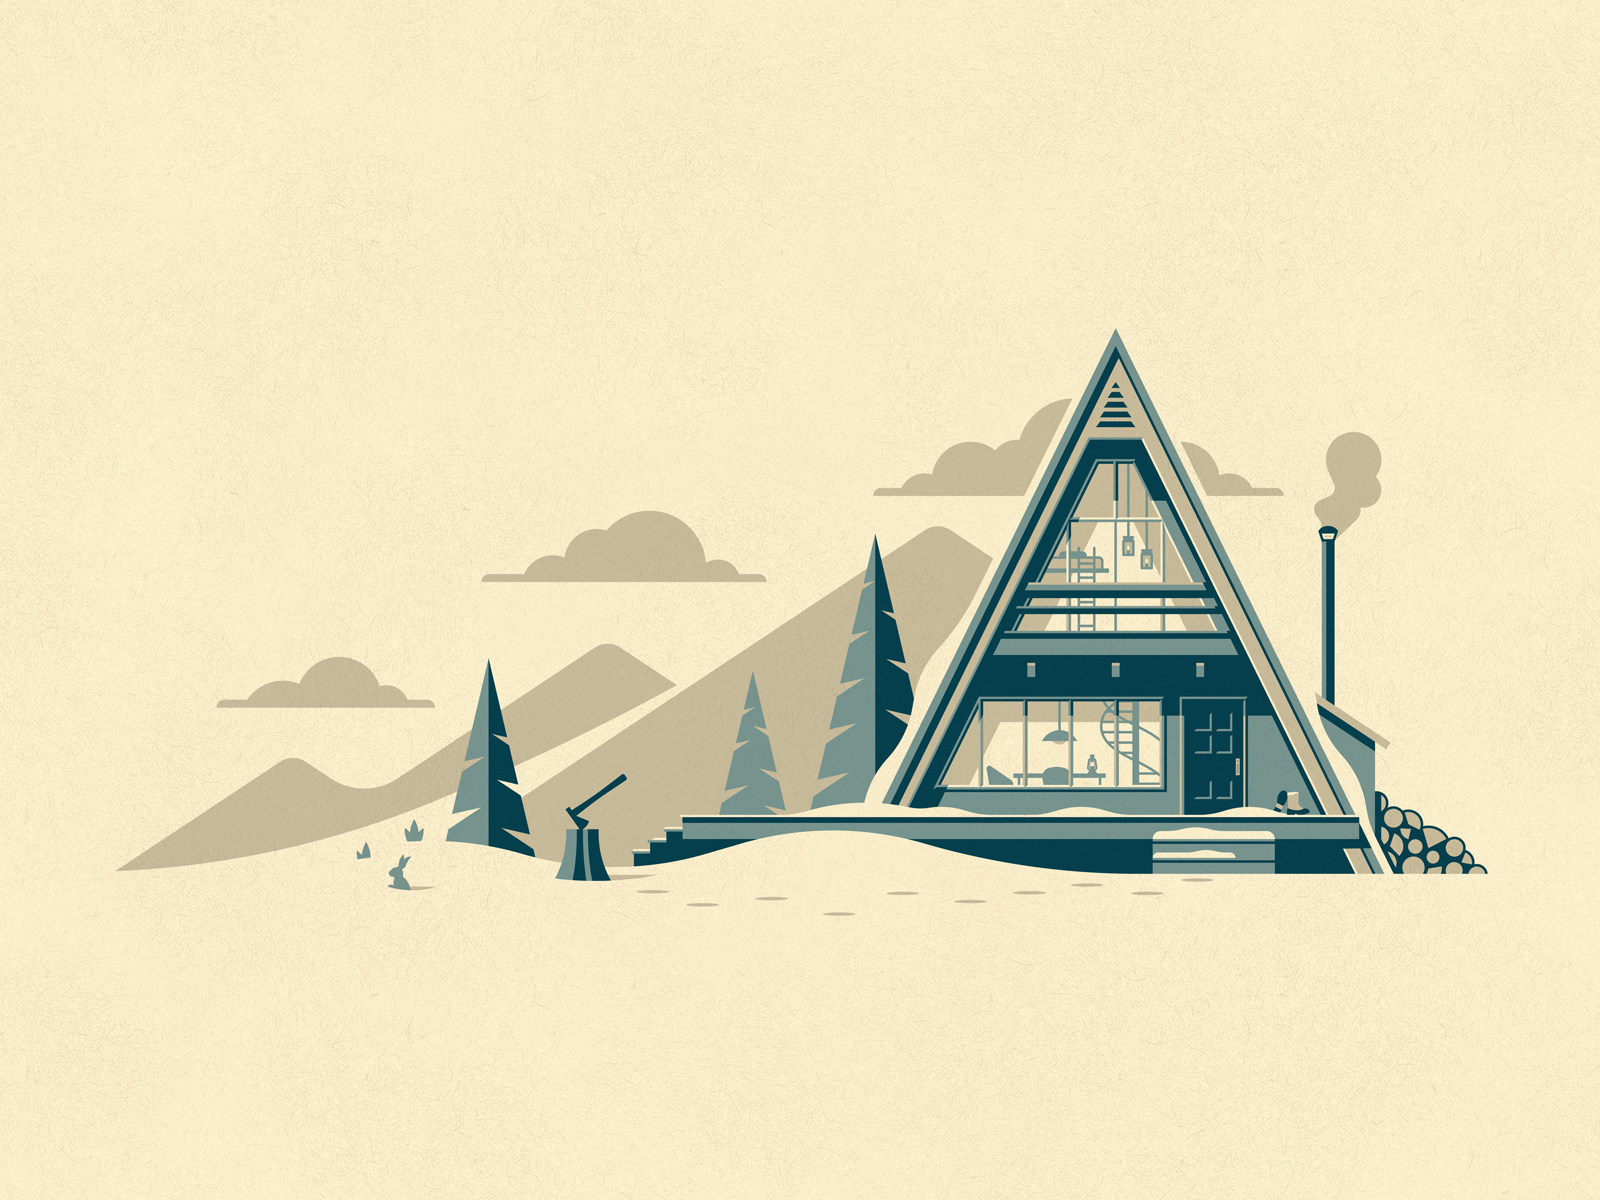 winter cabin illustration